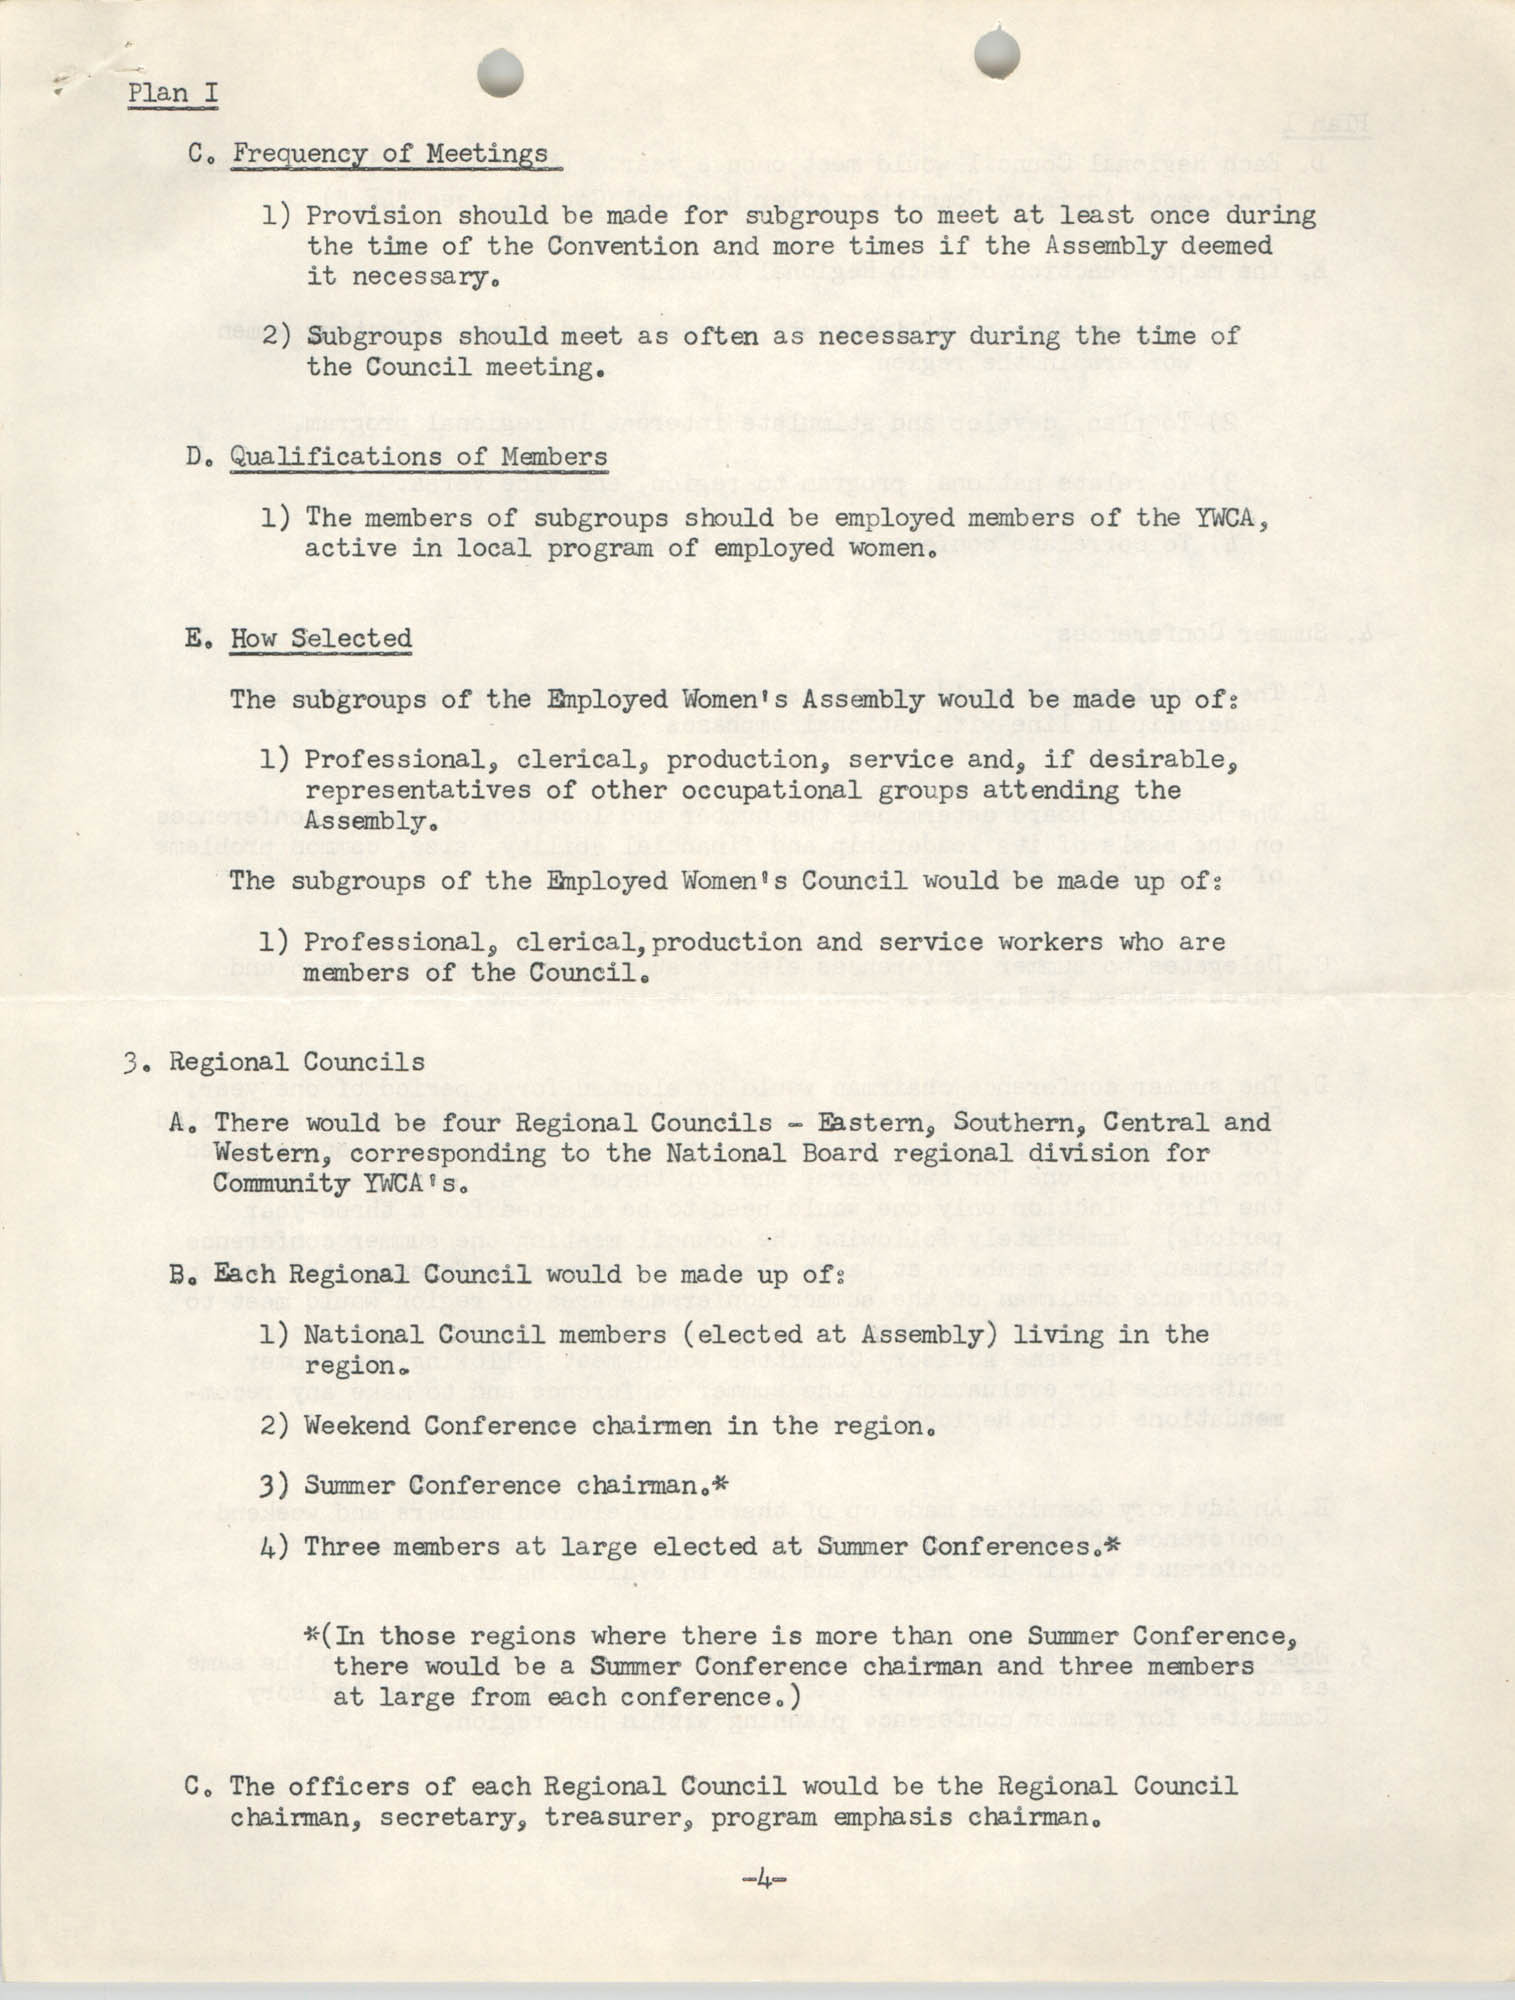 Division of Community Y.W.C.A.'s Committee Report, Plan I, Page 4